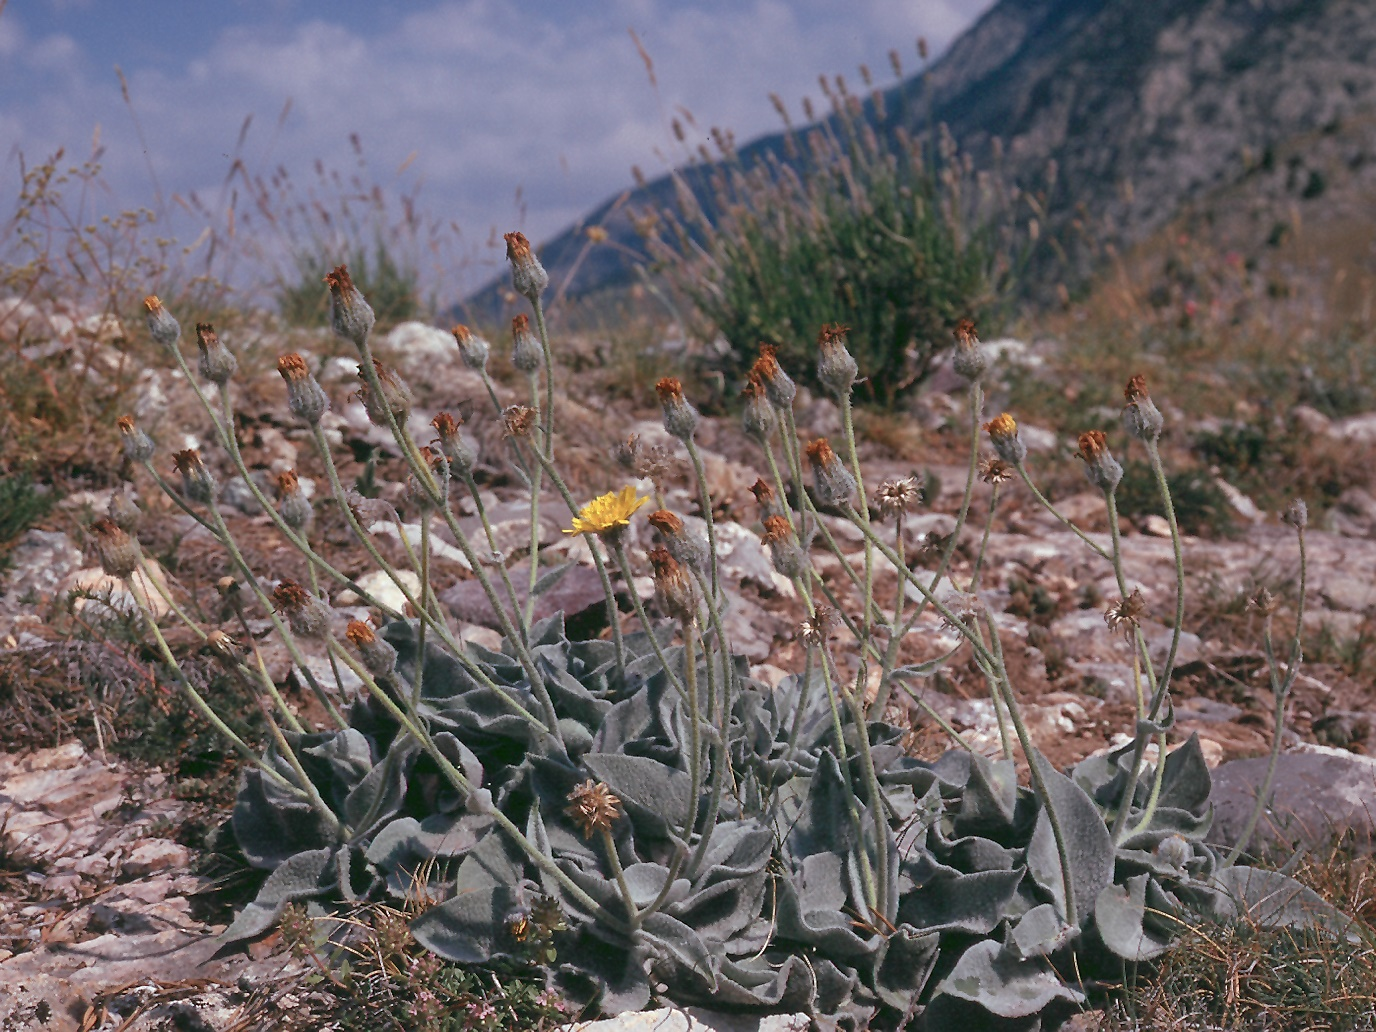 Hieracium lanatum